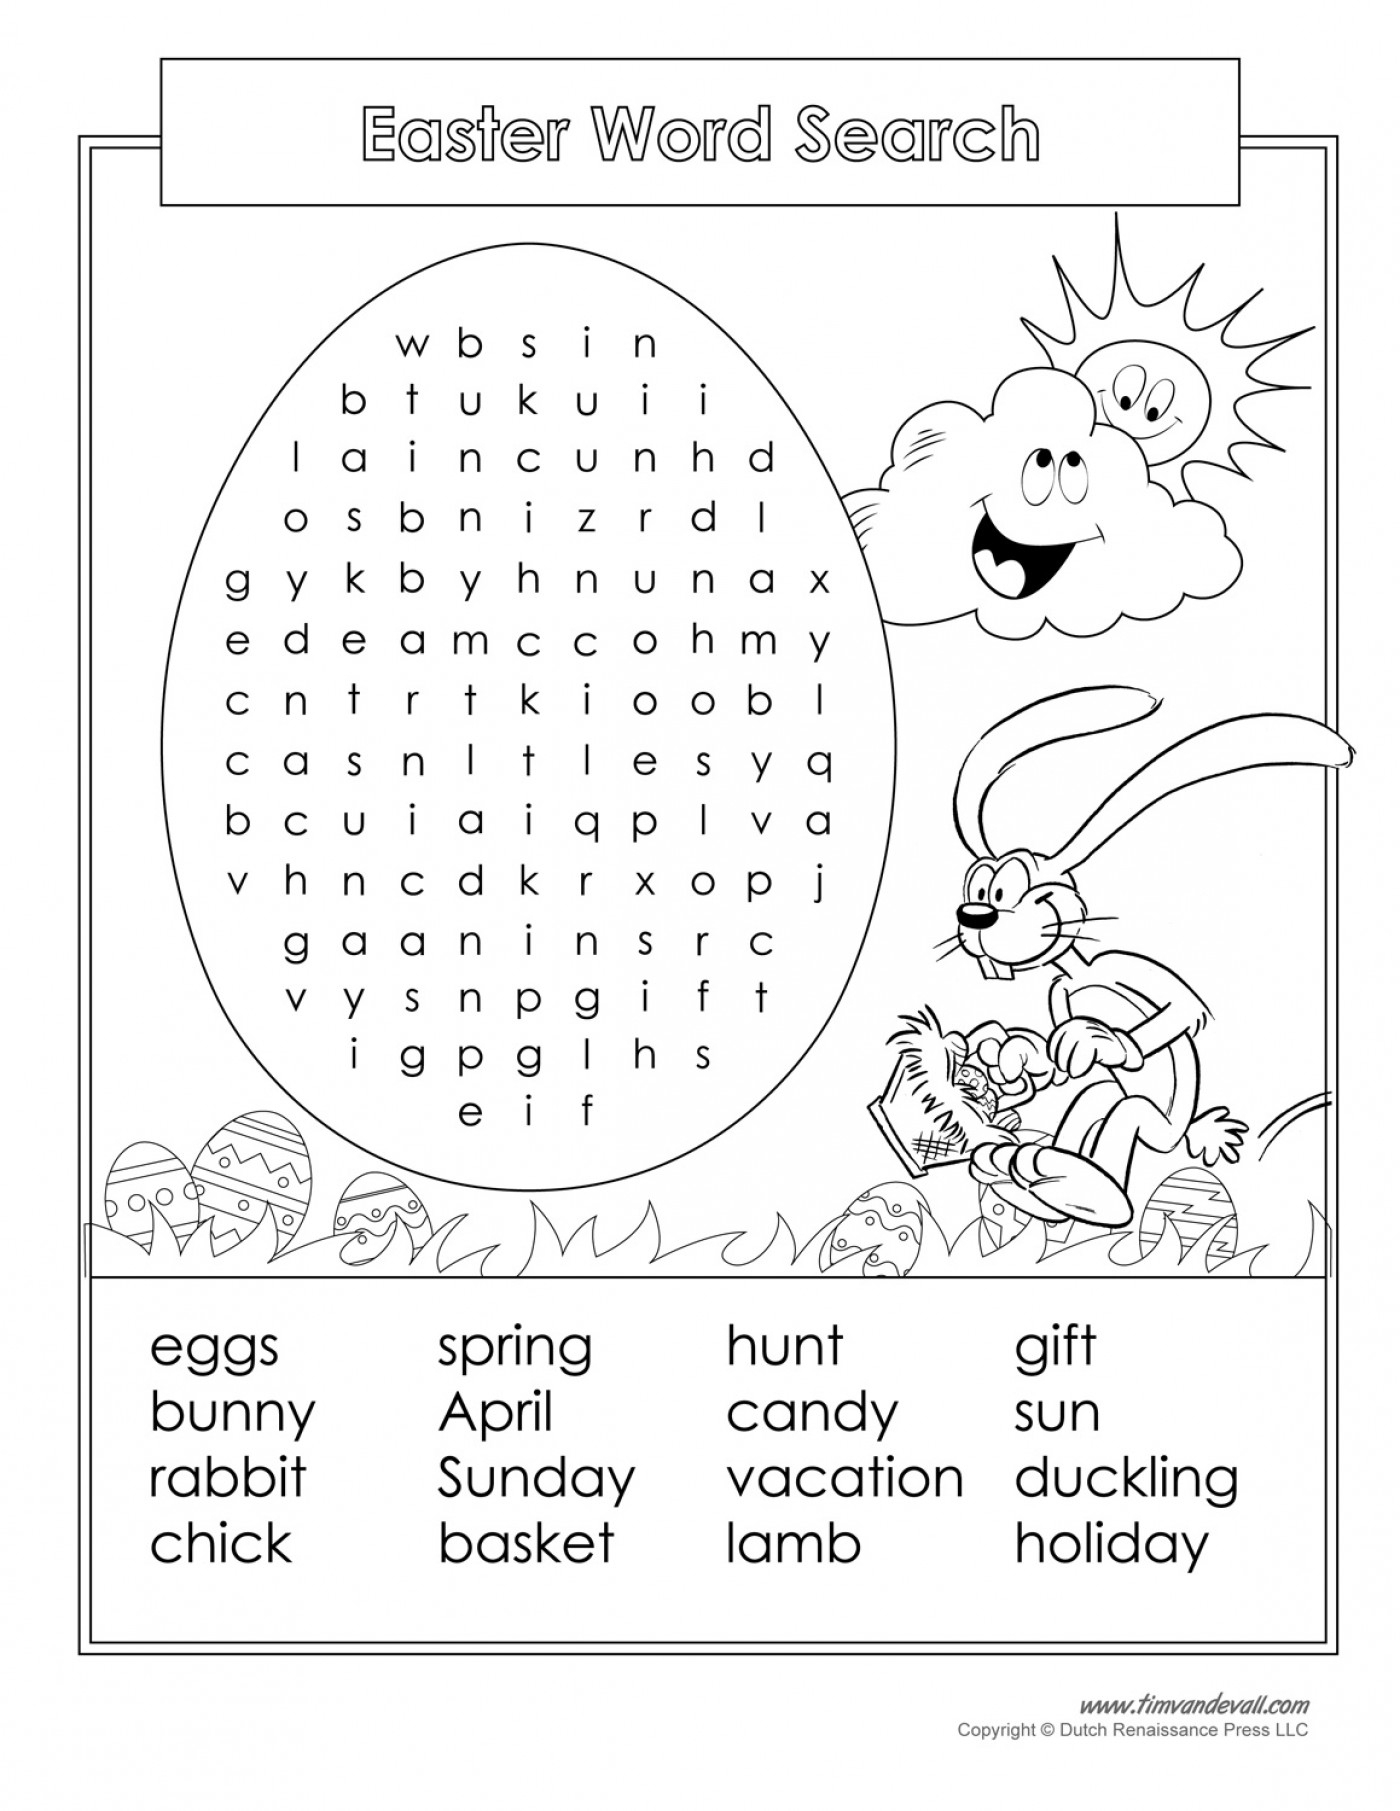 Easter Crossword Puzzle Printable Crosswords Free Word - Free - Printable Crossword Puzzles Easter